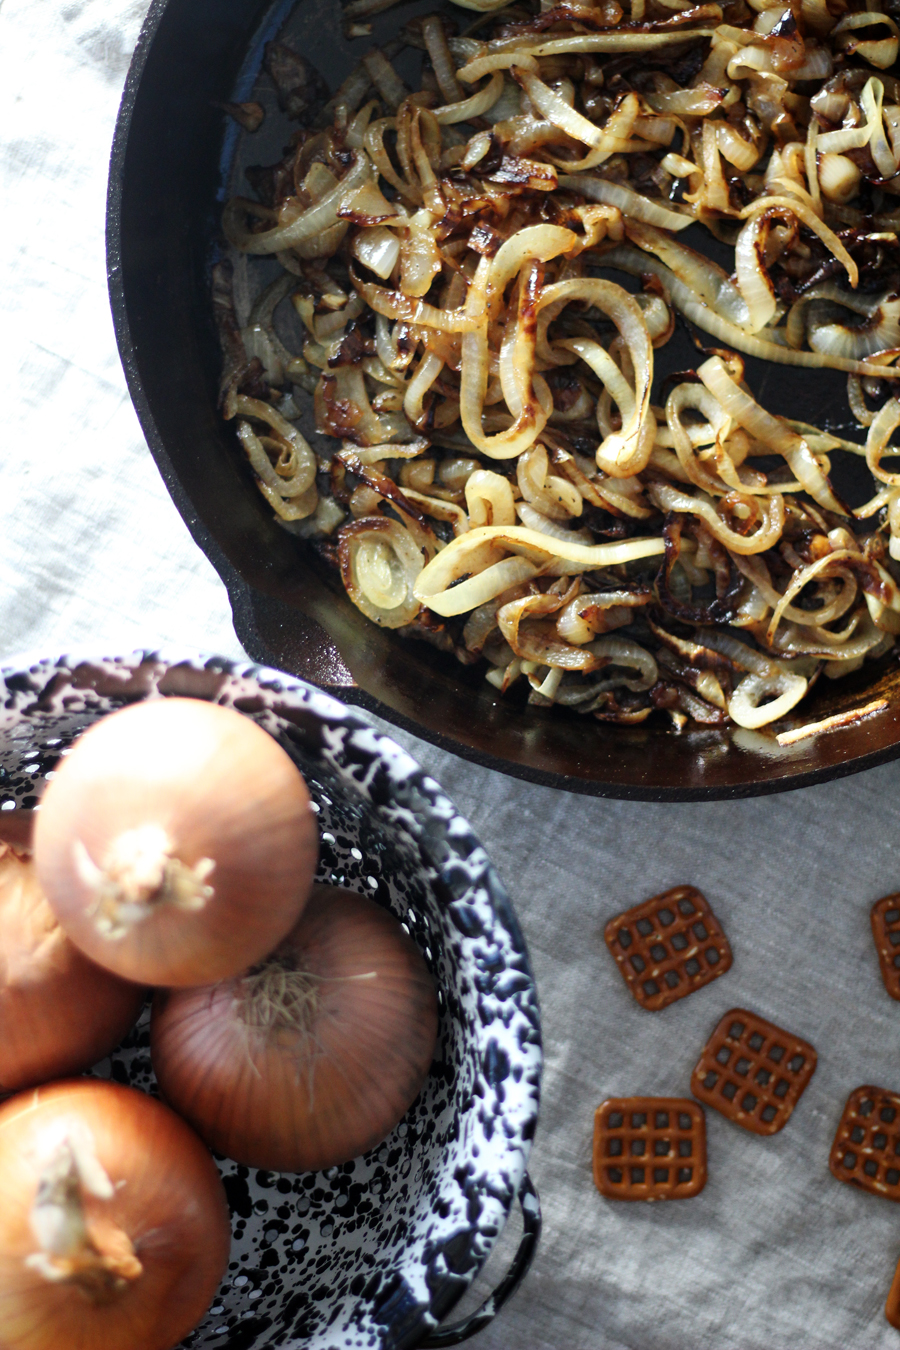 A skillet of caramelized onions